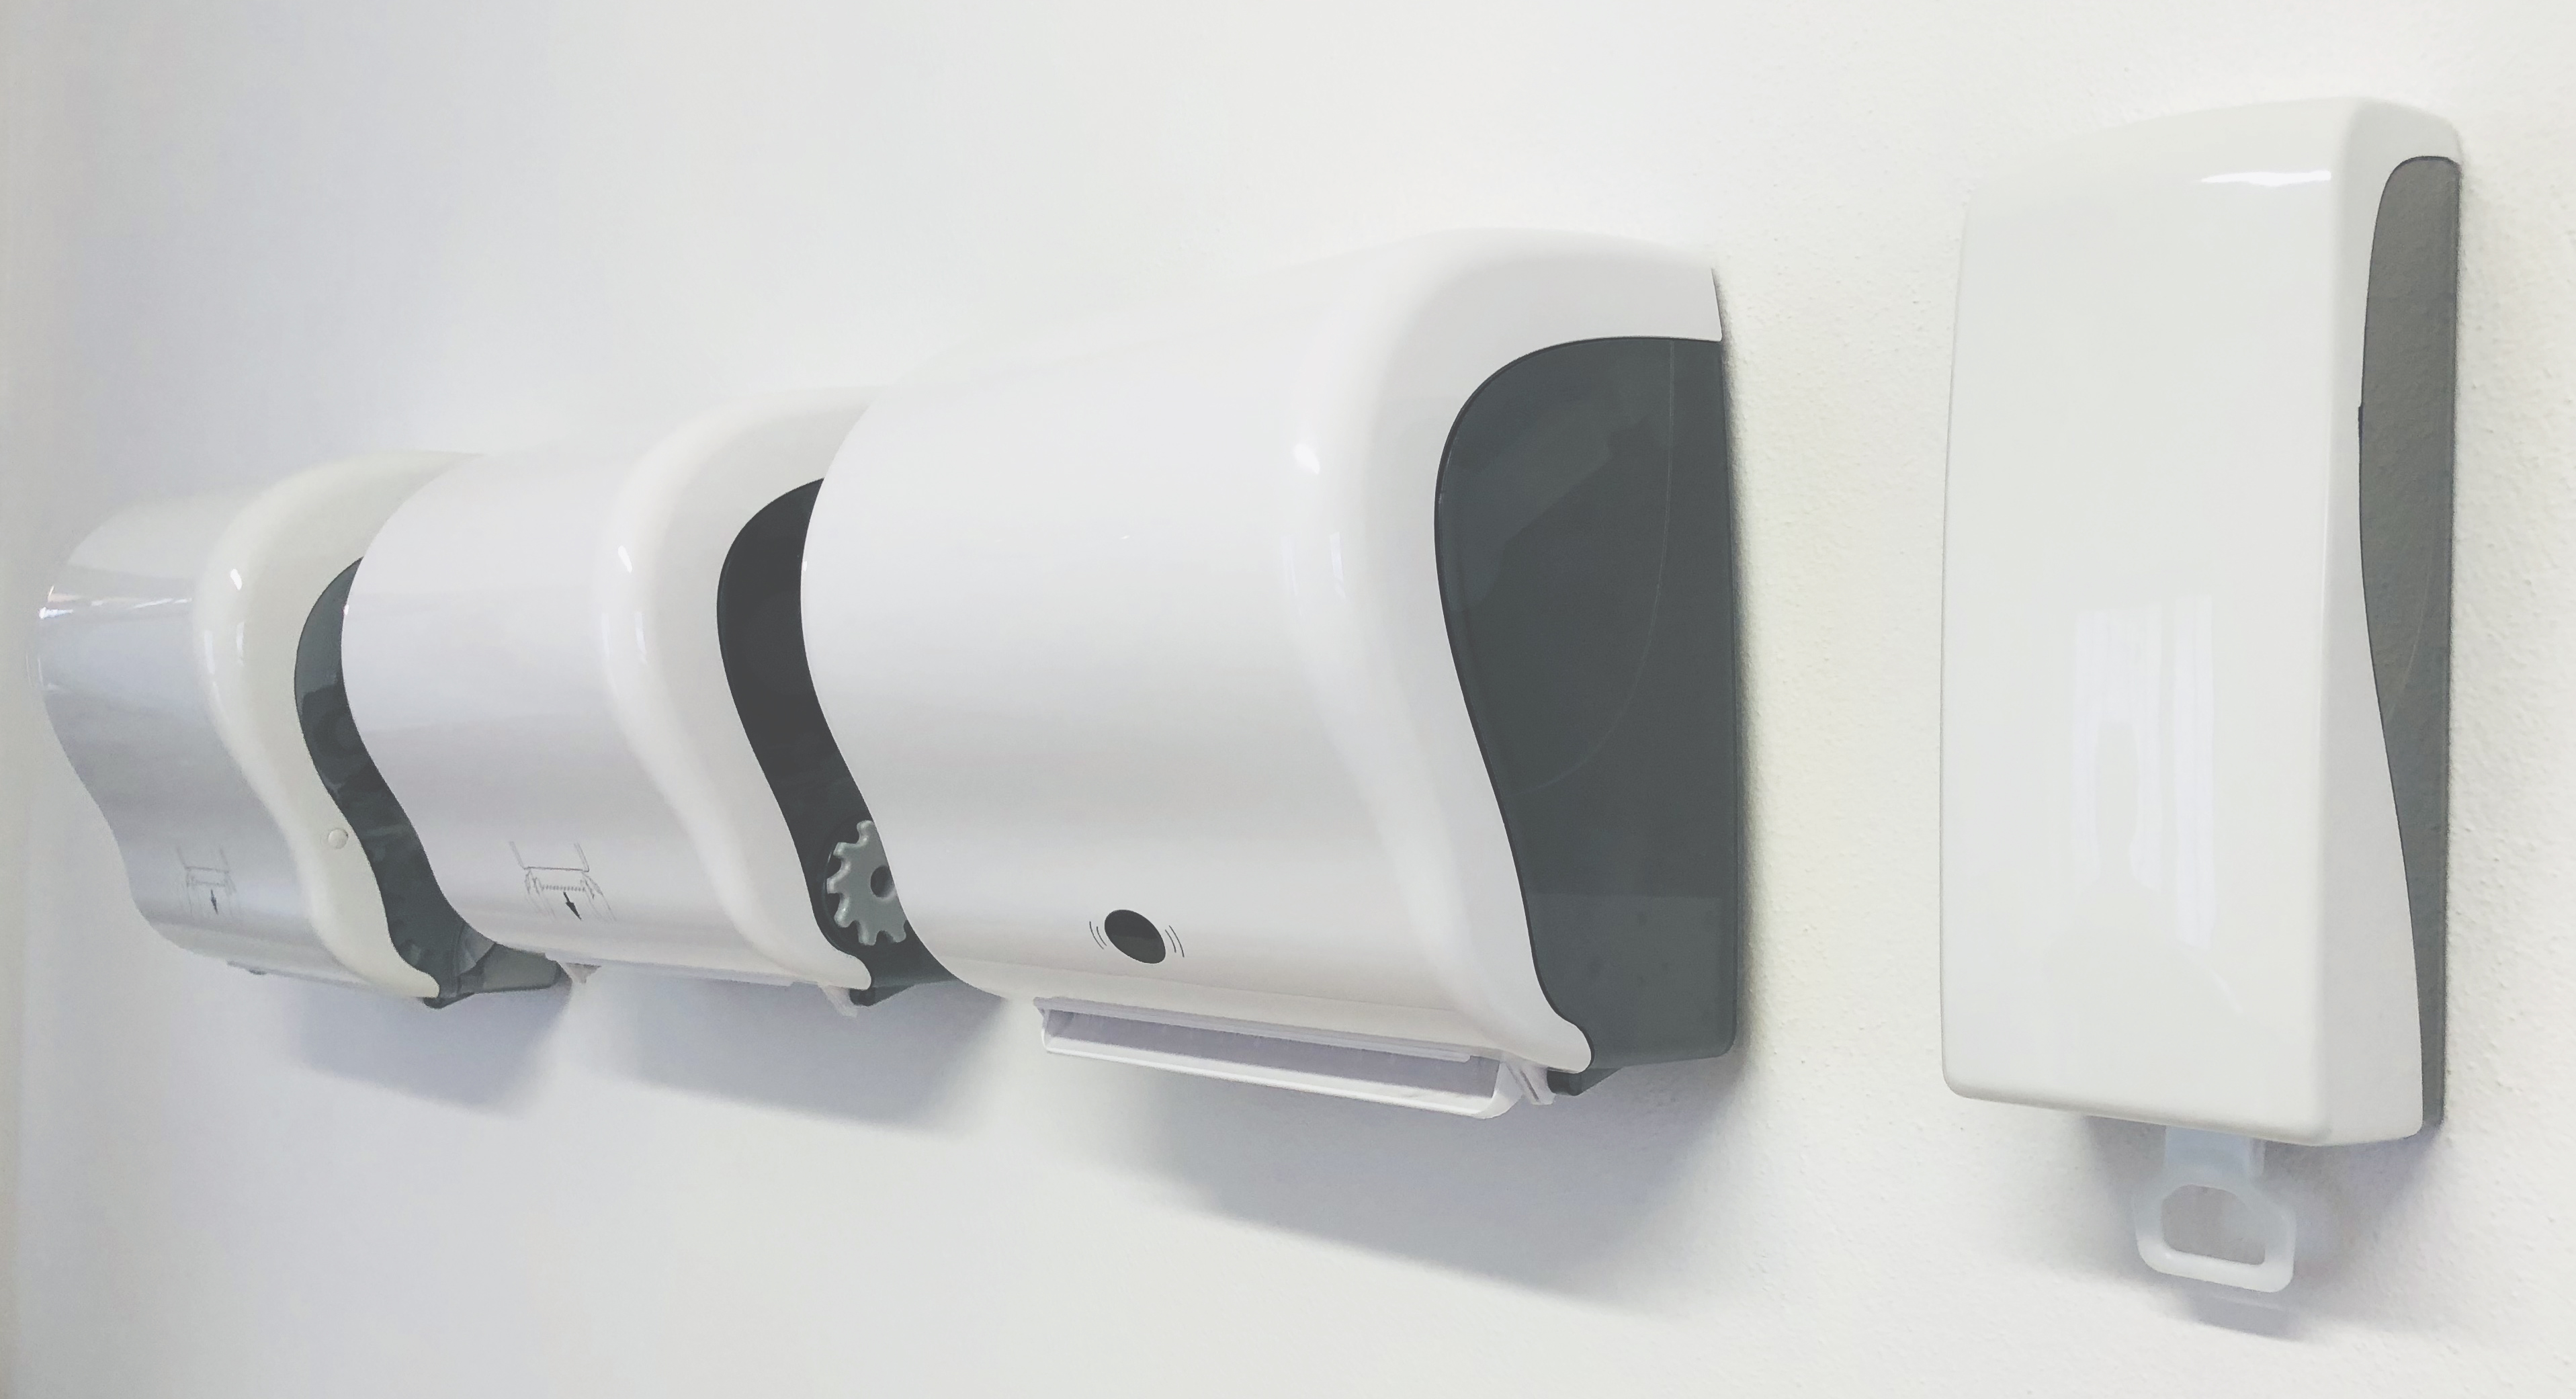 SCI-Services completes its papercut range with the Pico Cut, Pico S and a foam soap dispensing system